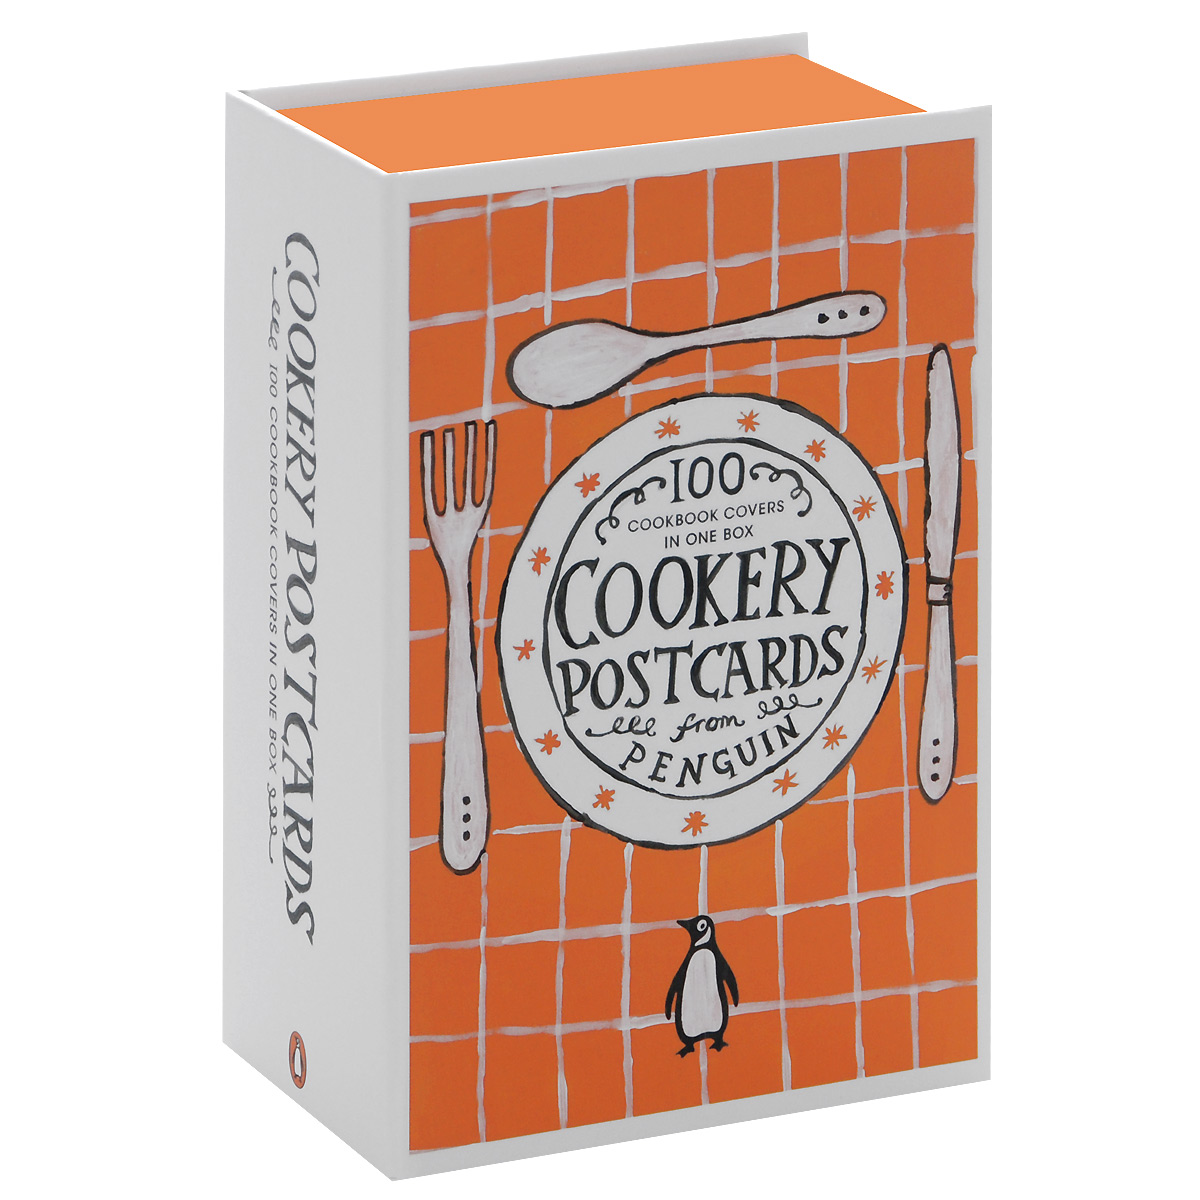 Cookery Postcards: 100 Cookbook Covers in One Box the art of adding and the art of taking away – selections from john updike s manuscripts